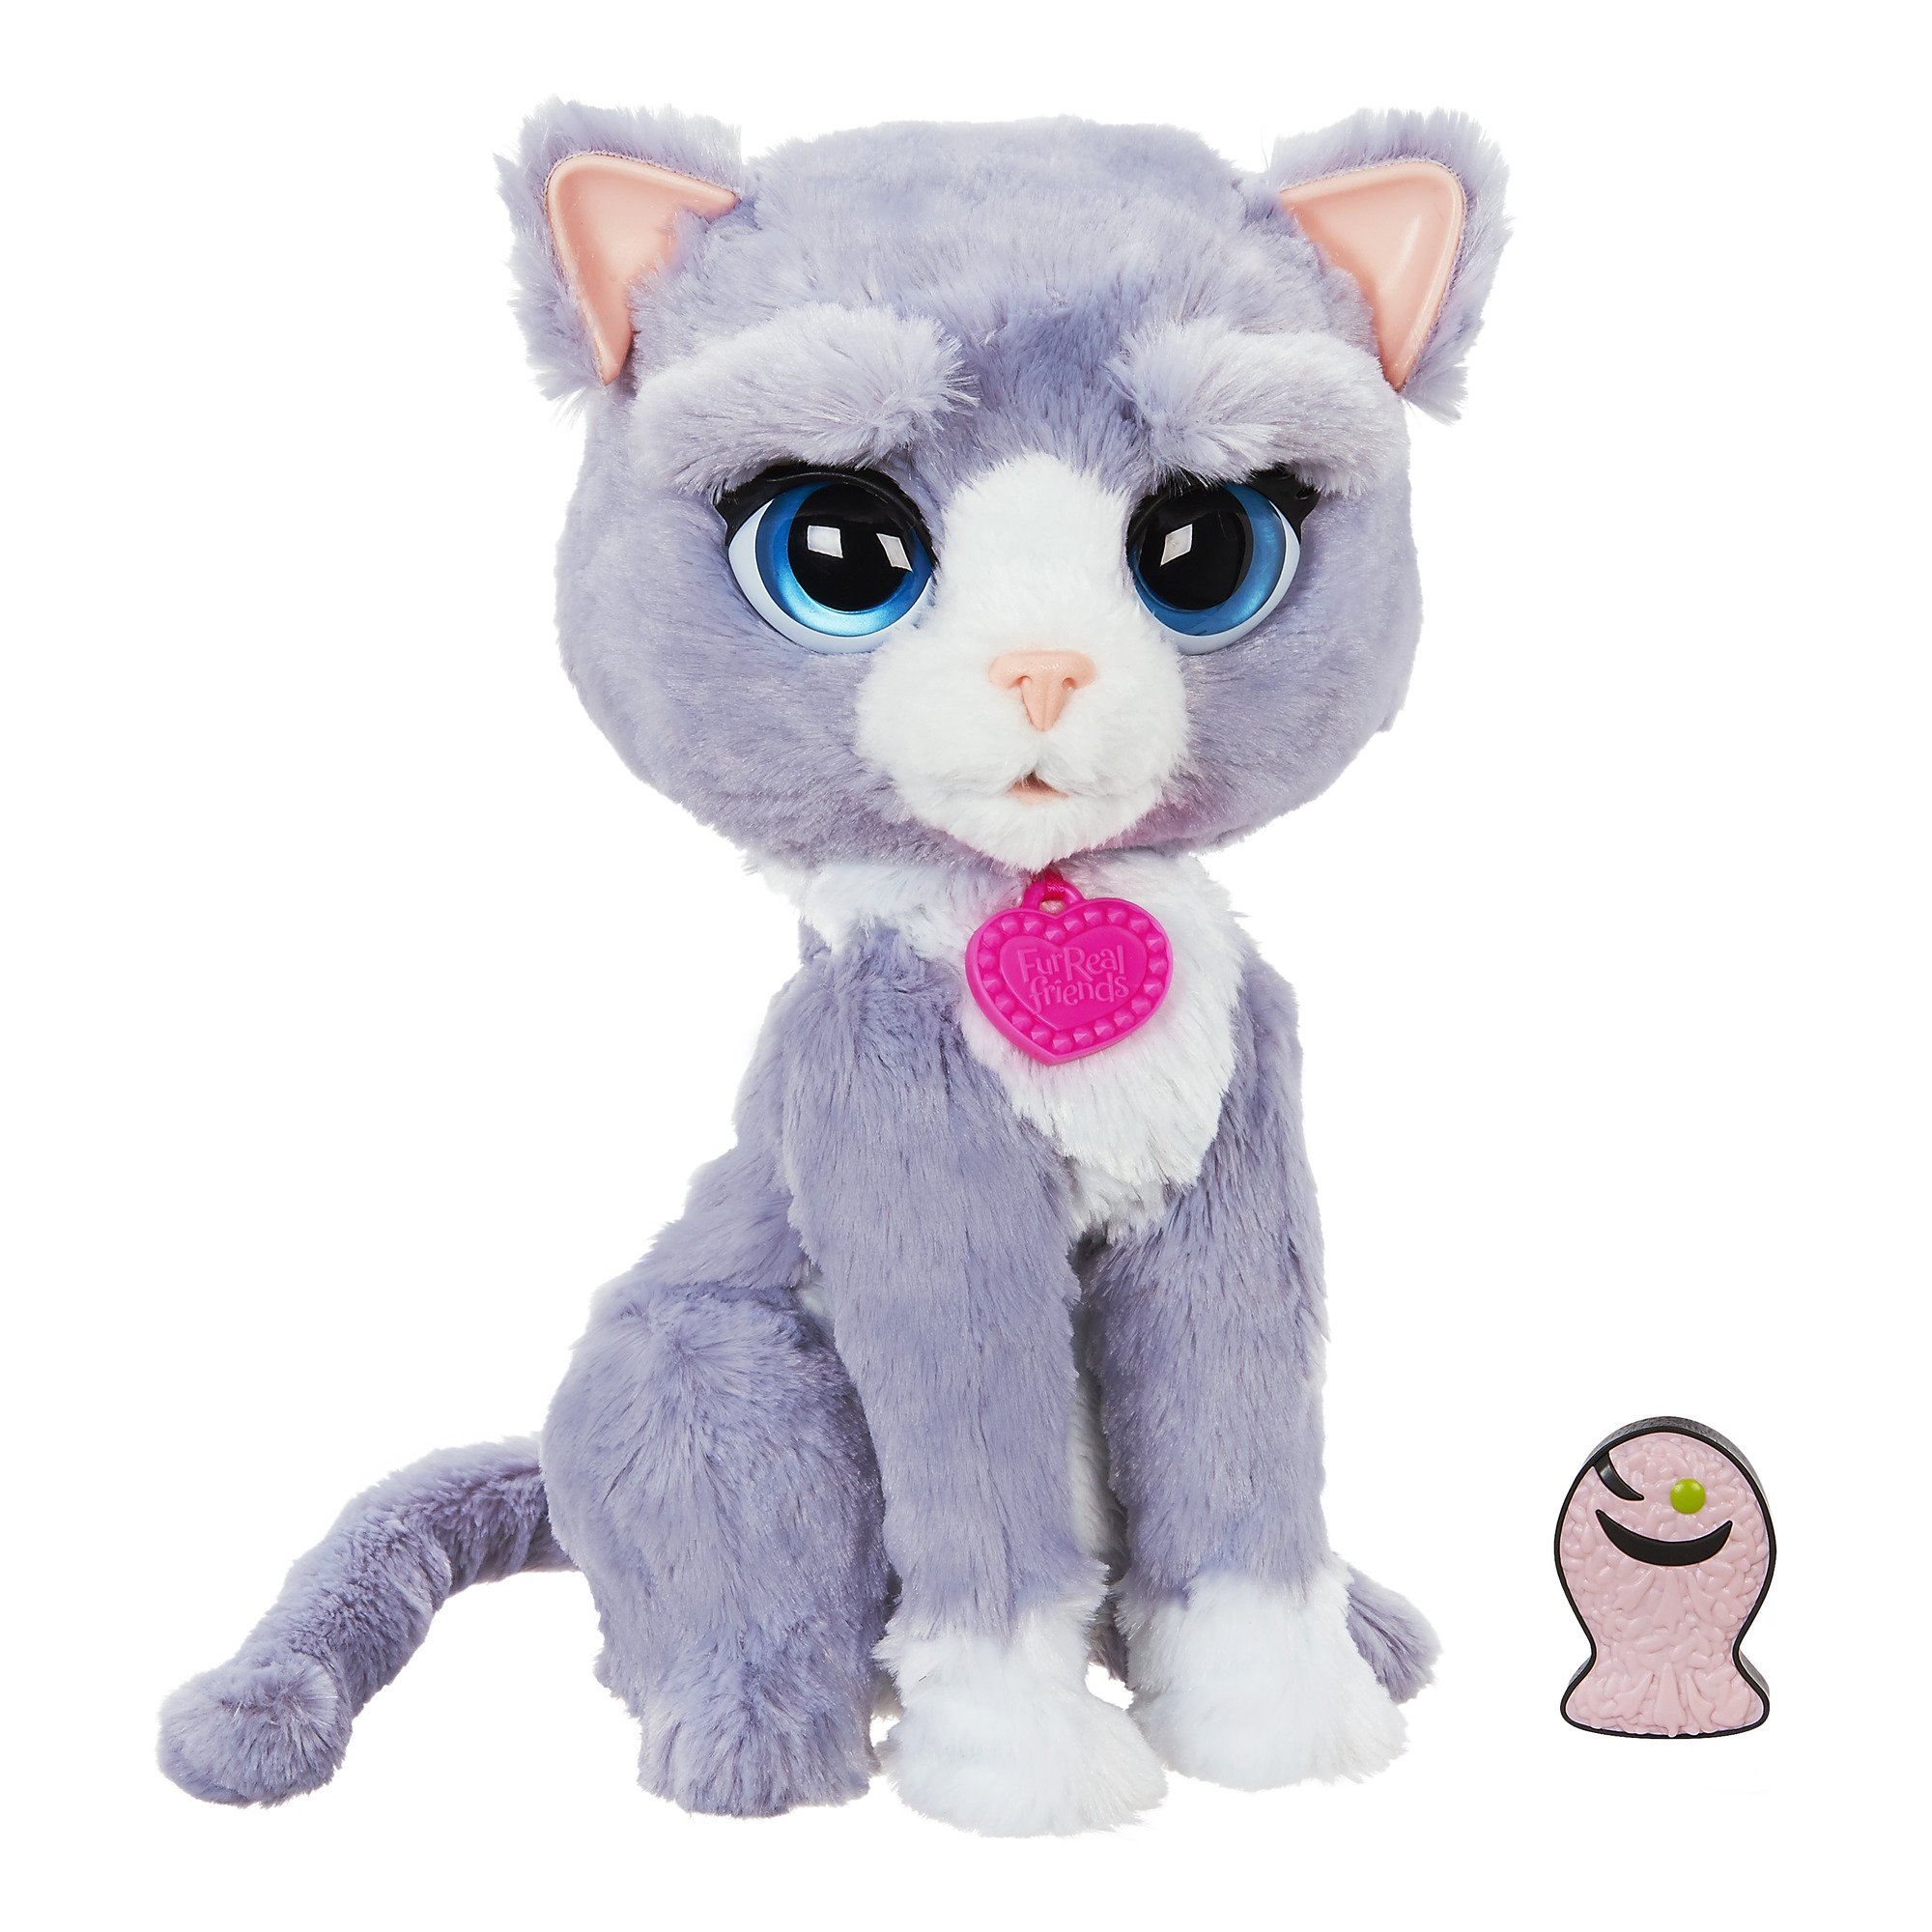 FurReal B5936AF1 Bootsie Interactive Plush Kitty Toy, Ages 4 & Up by FurReal